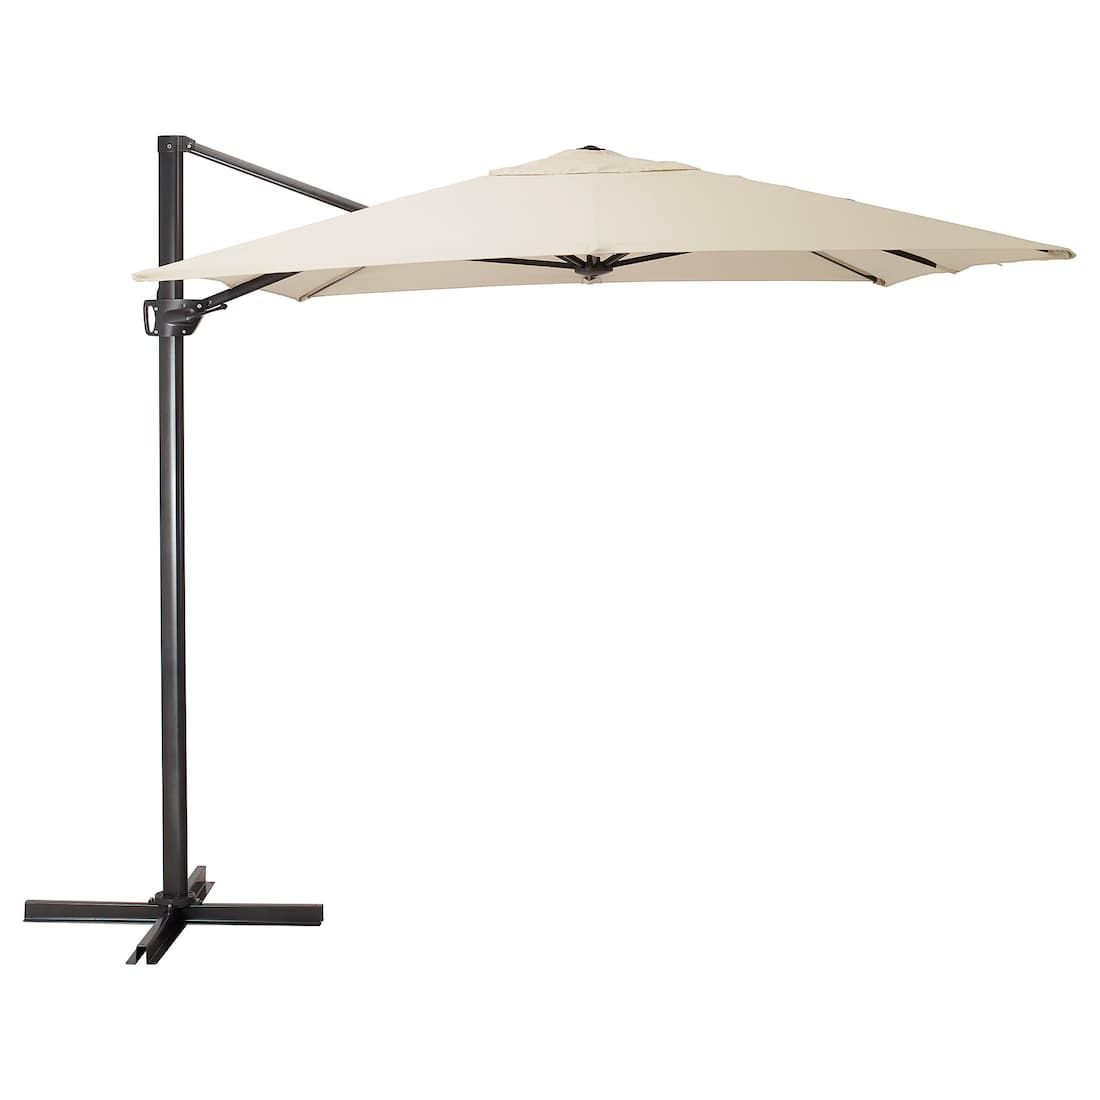 Amazon Ampelschirm SeglarÖ Umbrella Hanging Beige Tilting In 2019 Home Upgrades